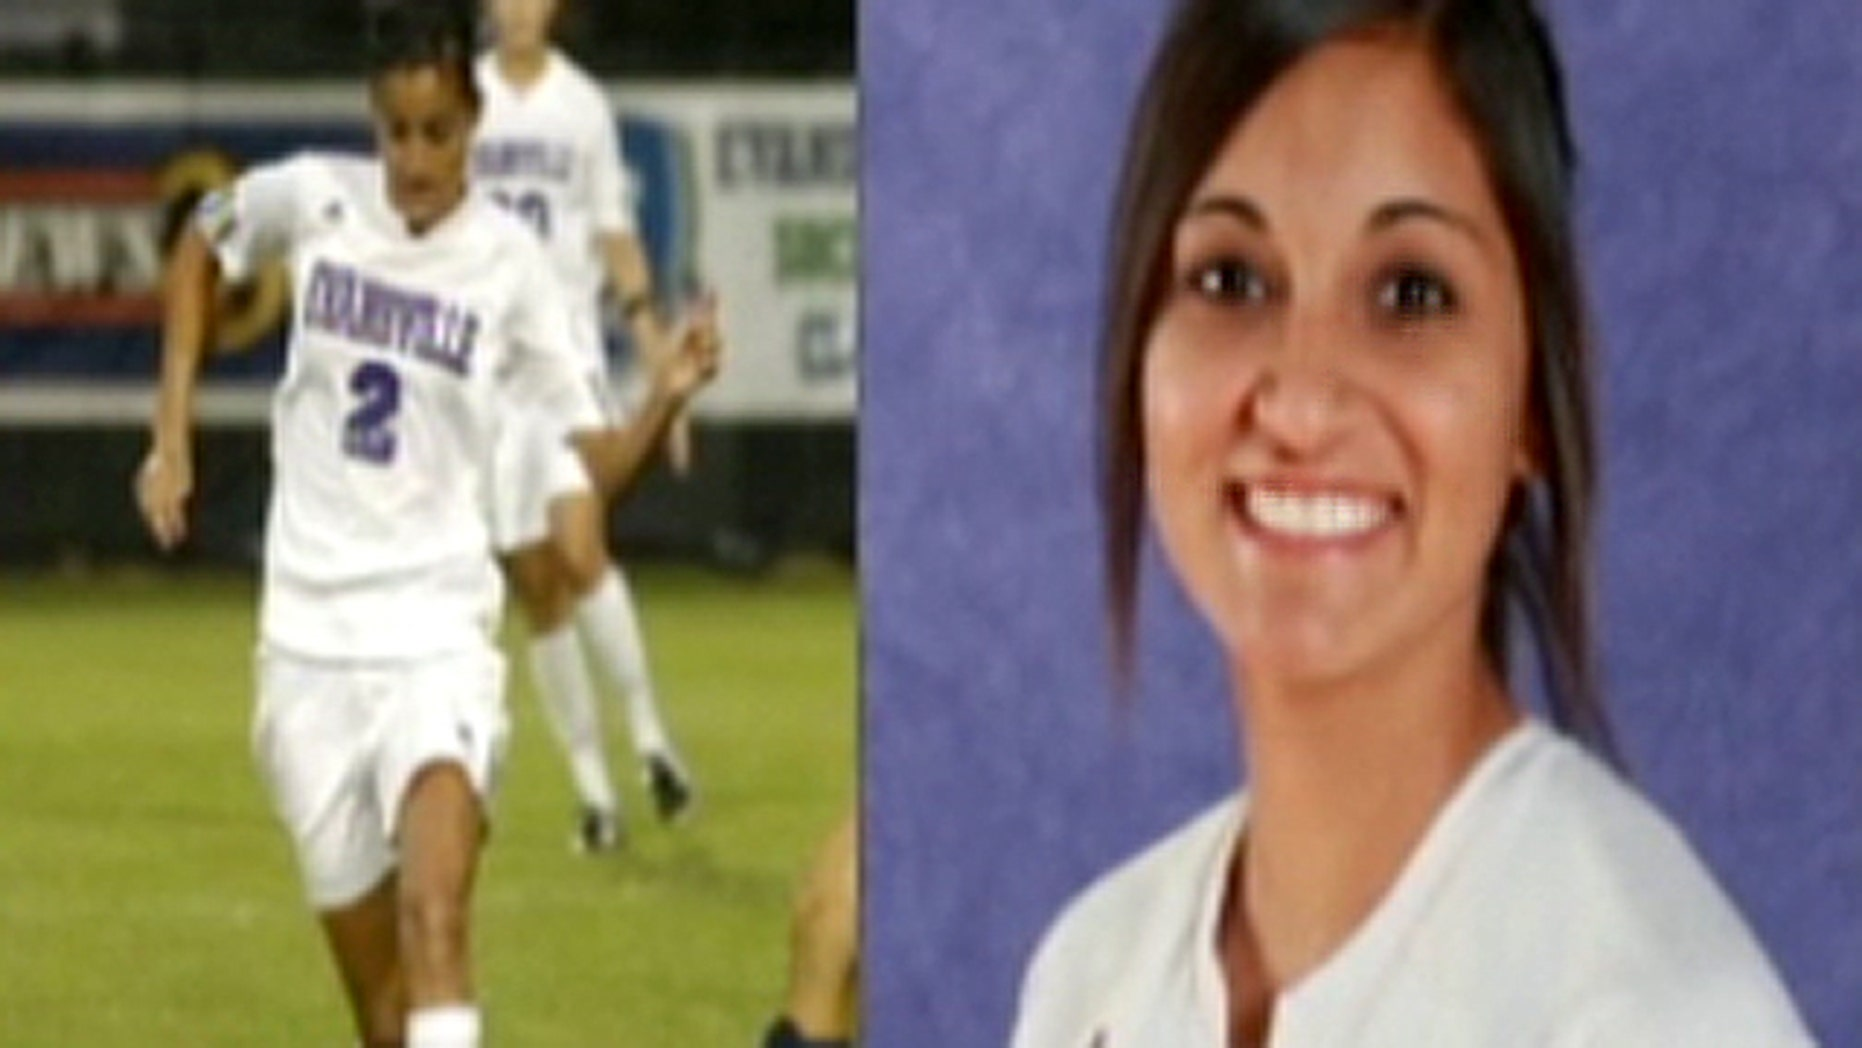 Abby Guerra, an Arizona high school soccer star, was reported to have been killed in a car crash but later found injured but alive in a nearby hospital.